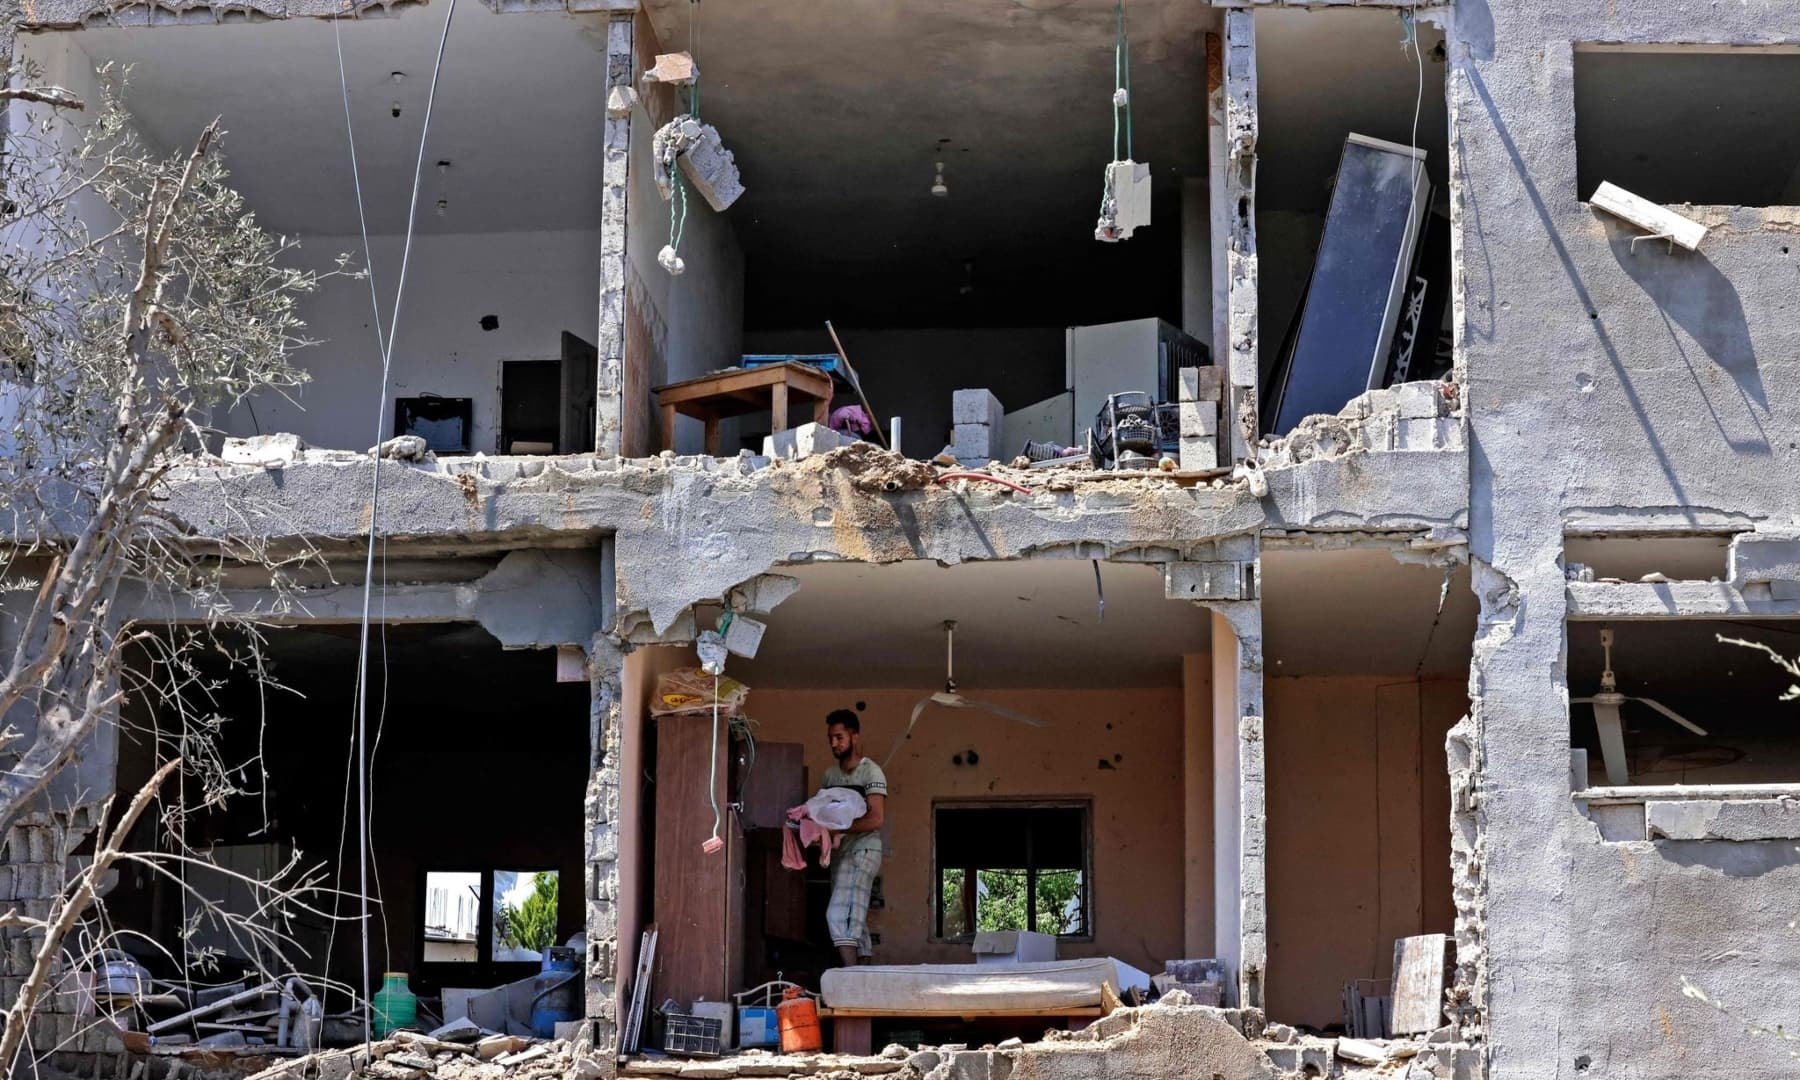 Palestinians assess the damage in a building caused by Israeli air strikes, in Beit Hanun in the northern Gaza Strip, May 14, 2021. — AFP